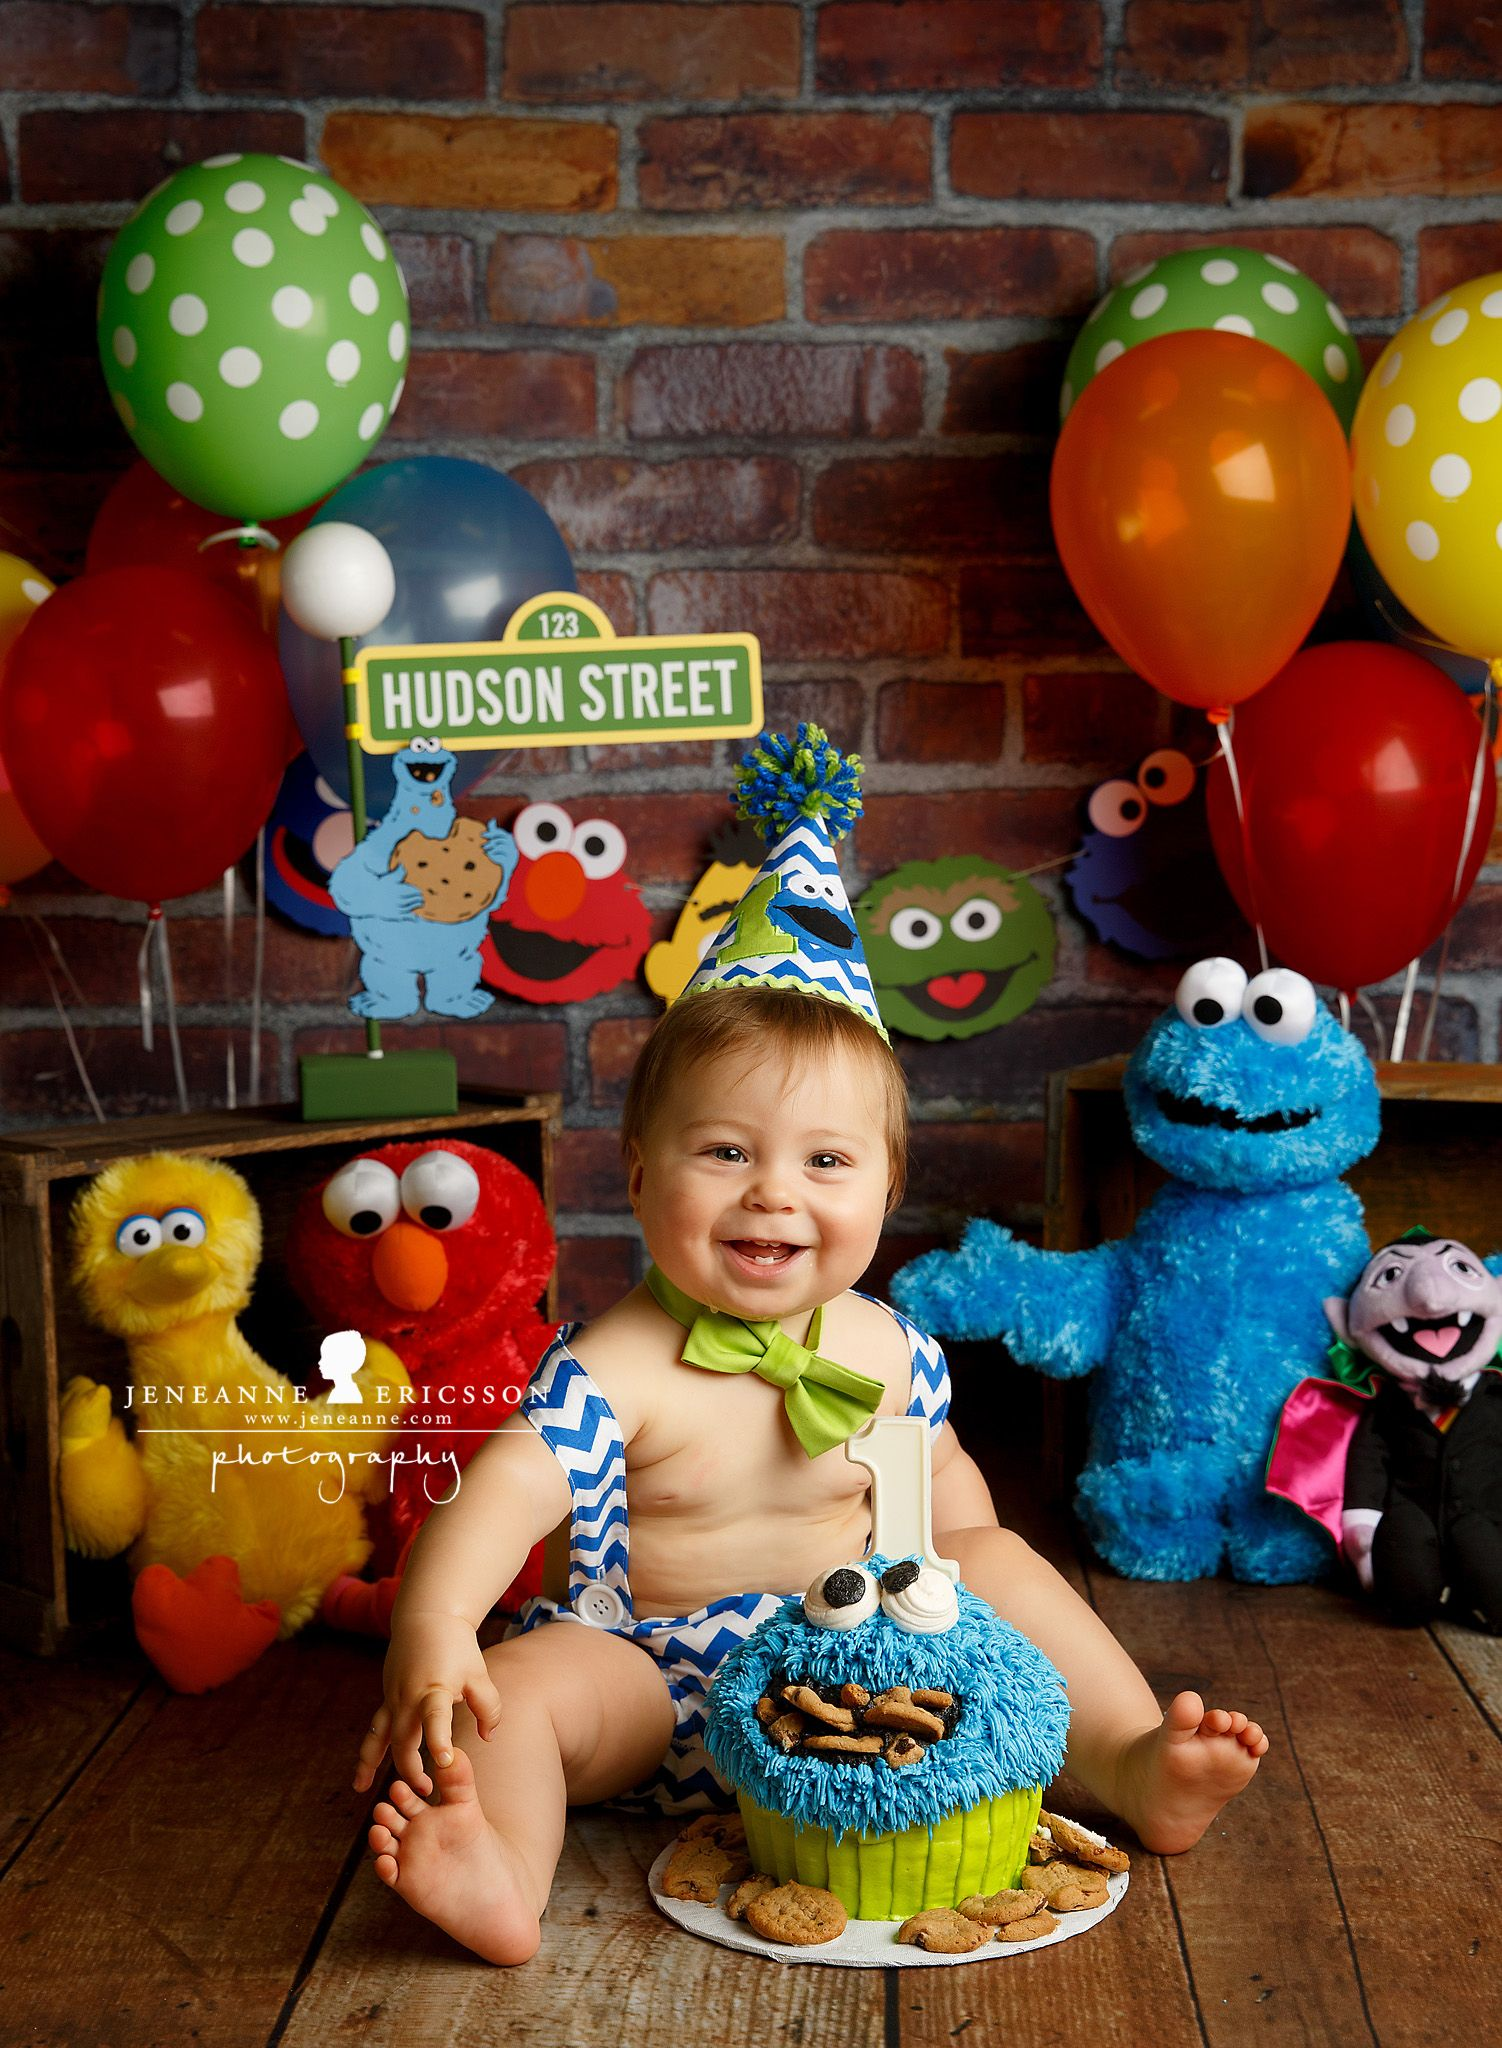 Elmo 1st birthday party ideas birthday party sesamestreet - Browse Our Cake Ideas For Men S Birthday Cakes Celebrate With Our Birthday Cakes For Men Ideas Designs And